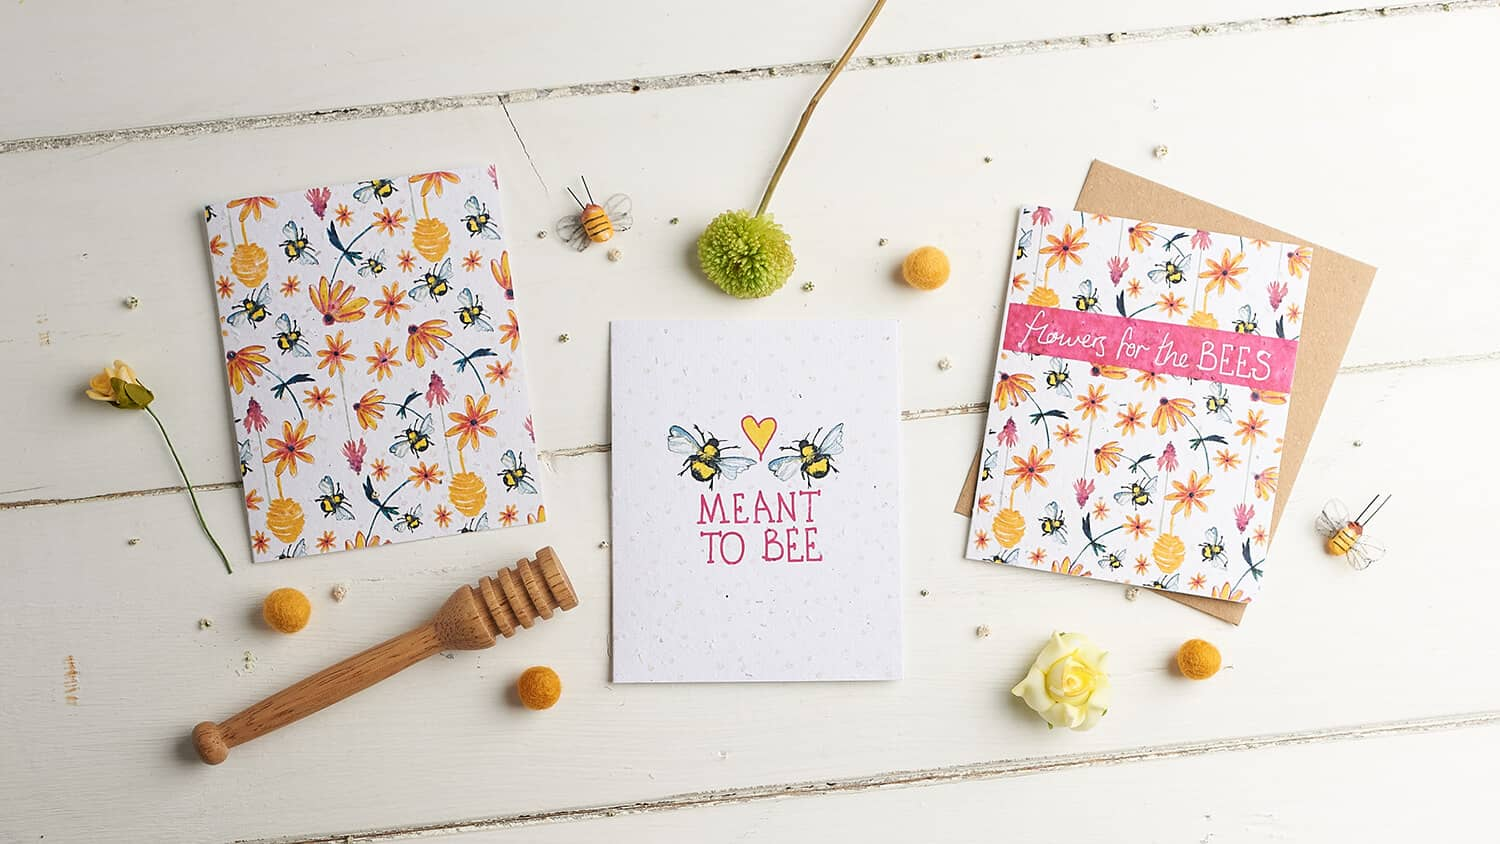 White slatted wooden board used in this styled professional photograph for illustrator Hannah Marchant